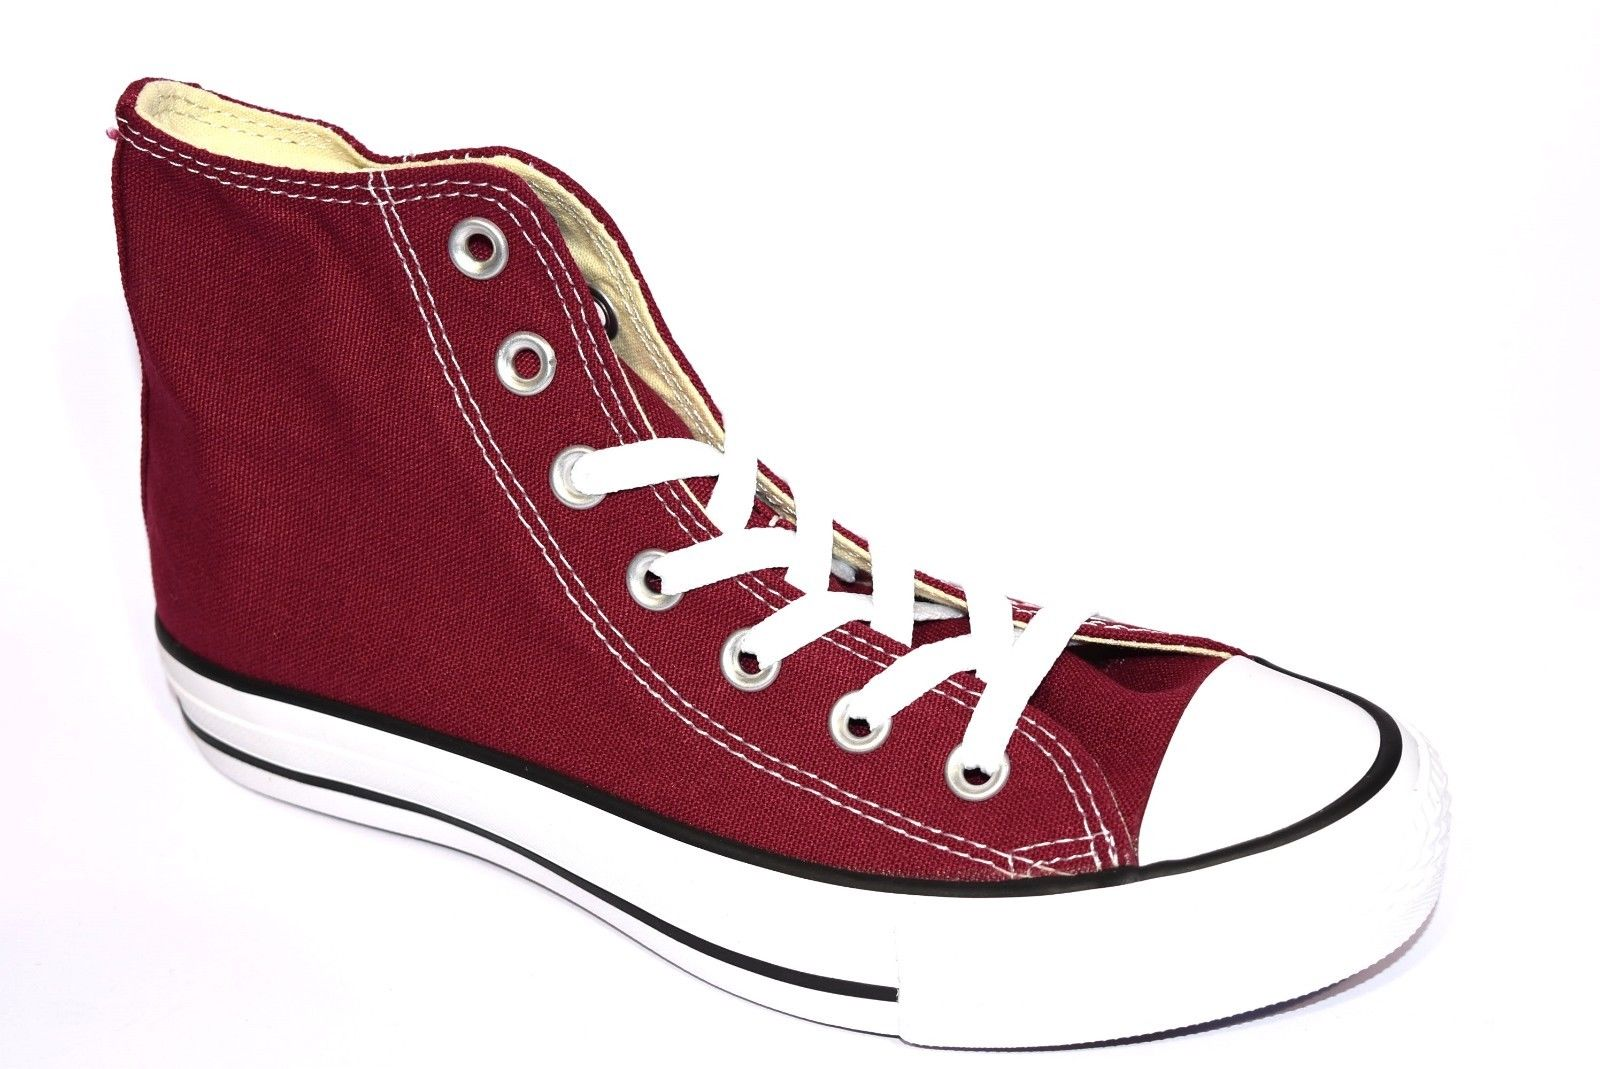 All Maroon Star Shoesmyfriends Converse Alte Scarpe M9613c it Cq1Bwdv